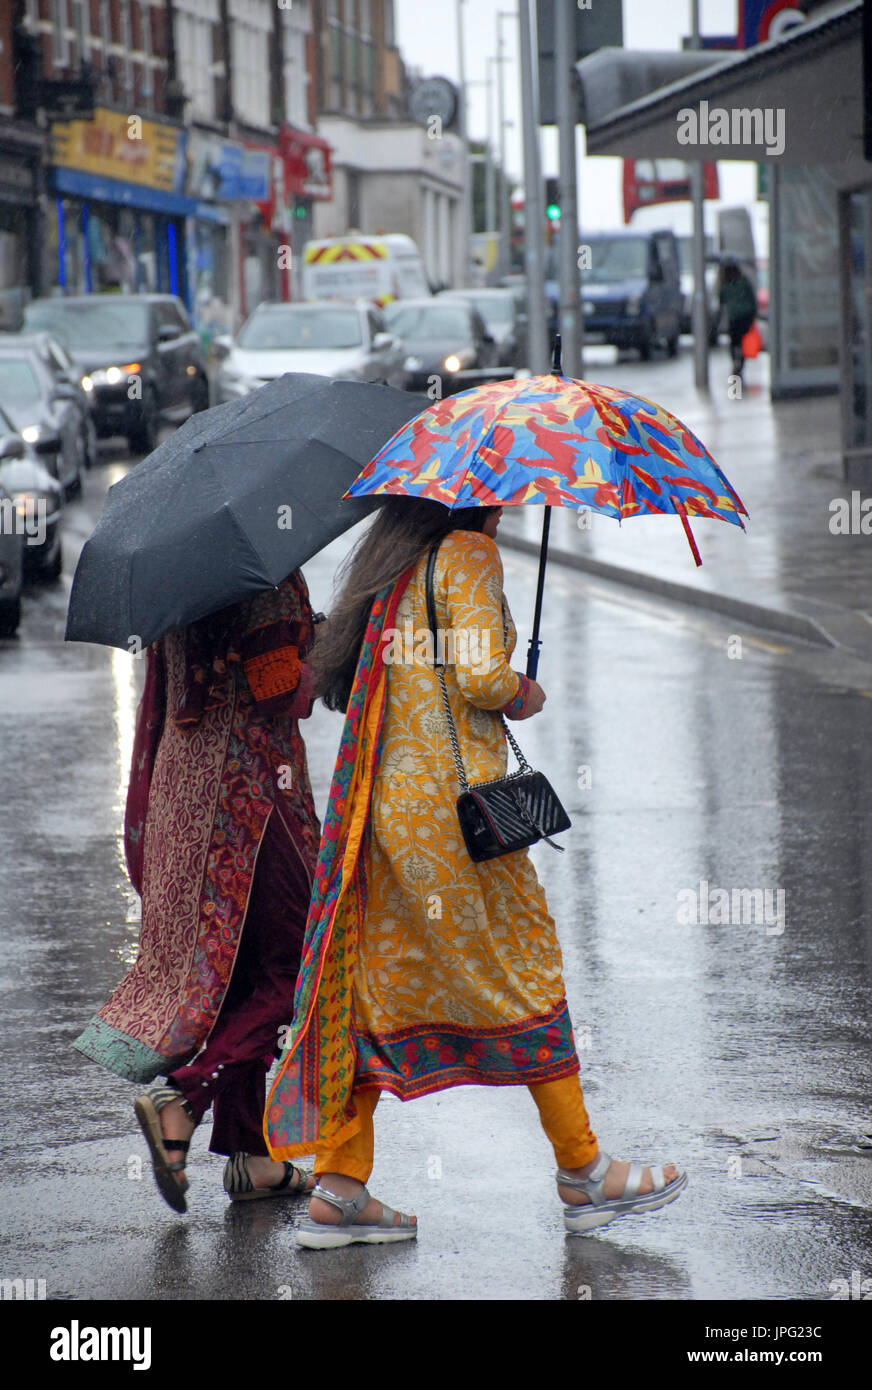 London, UK. 2nd Aug, 2017. Heavy rain in Battersea, London in the first week of school holidays Credit: JOHNNY ARMSTEAD/Alamy Stock Photo